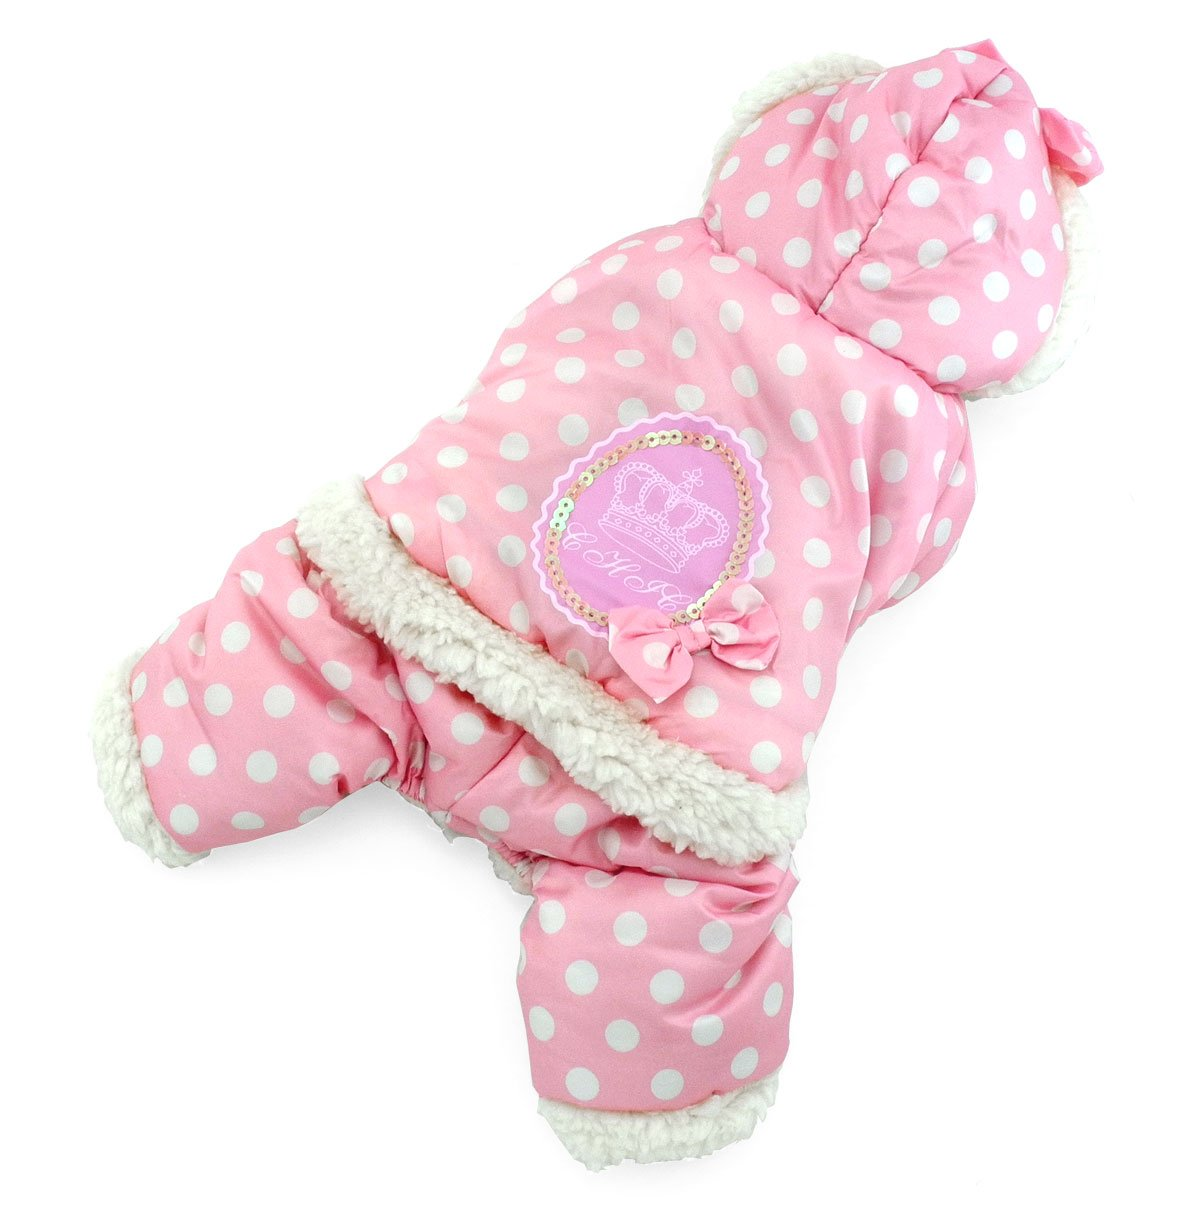 SELMAI Polka Dots Hooded Warm Pet Fleece Jumpsuit Puppy Winter Snowsuit Small Dog Cat Coat Jacket Pjs Outfits Chihuahua Clothes Apparel Pink XL